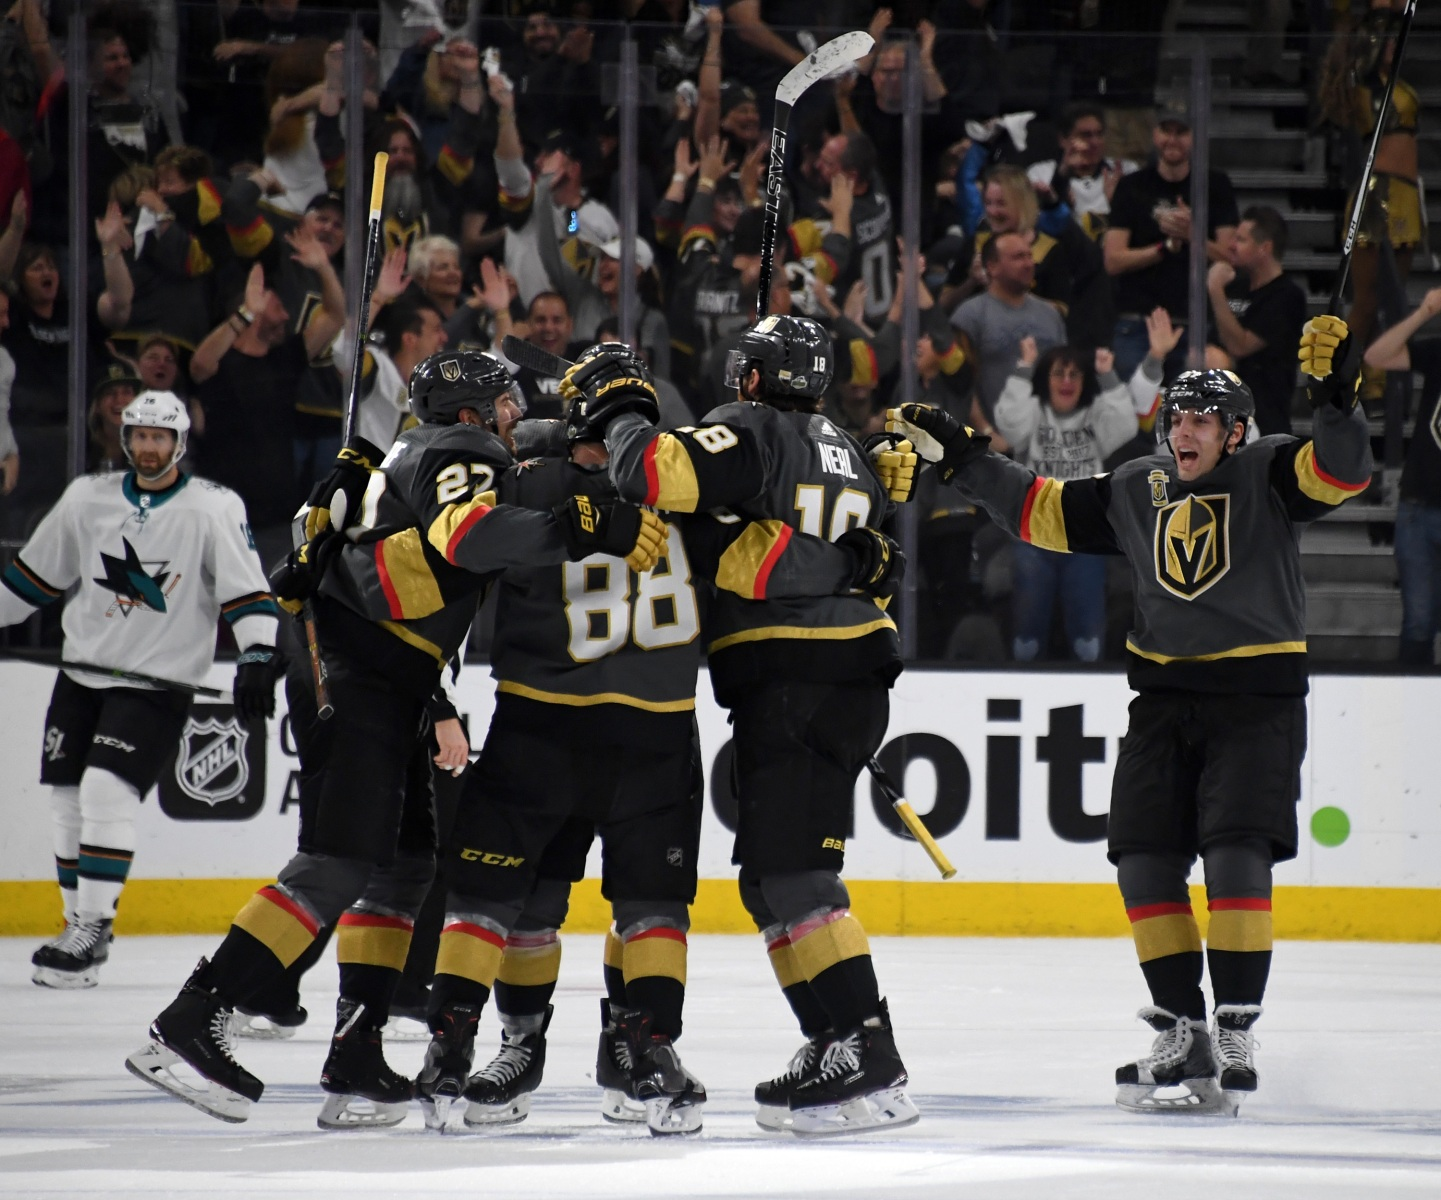 The Vegas Golden Knights celebrate a third-period goal by Nate Schmidt #88 in the third period of Game Two of the Western Conference Second Round during the 2018 NHL Stanley Cup Playoffs at T-Mobile Arena on April 28, 2018 in Las Vegas, Nevada.  (Photo by Ethan Miller/Getty Images)